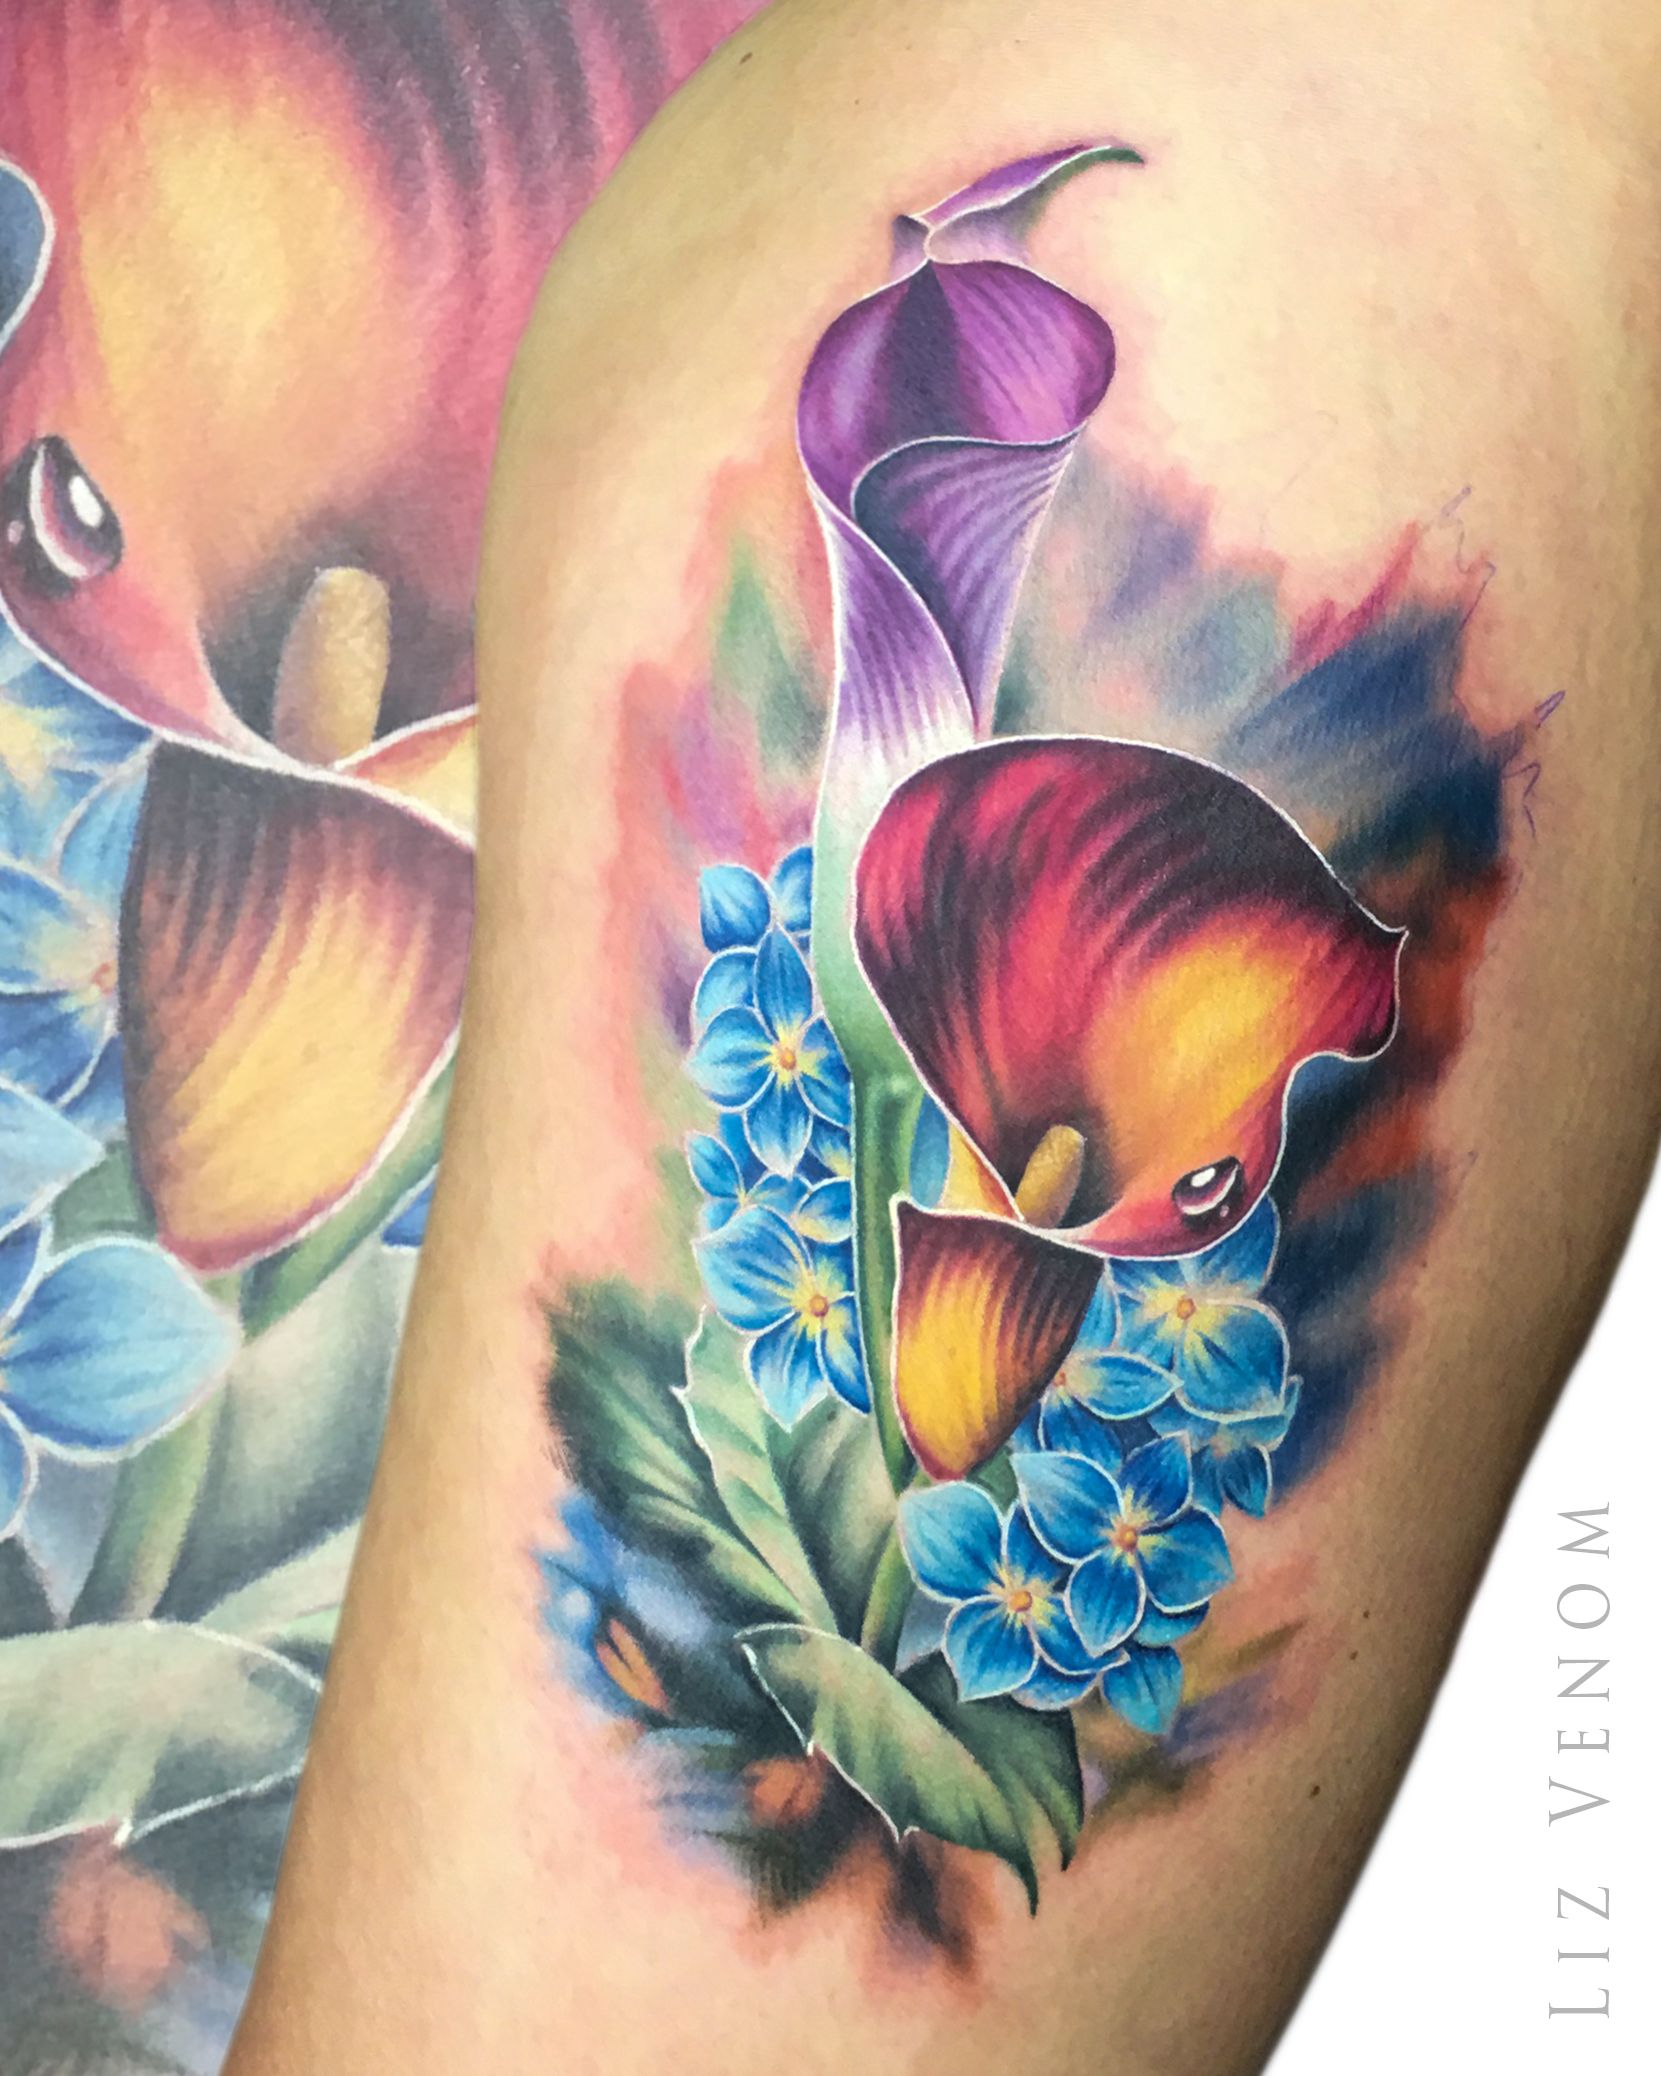 A Beautiful Cala Lily And Hydrangea Tattoo I Did That Was Inspired By The Amazing Igor Levashov Ink Realistic Flower Tattoo Lily Tattoo Sleeve